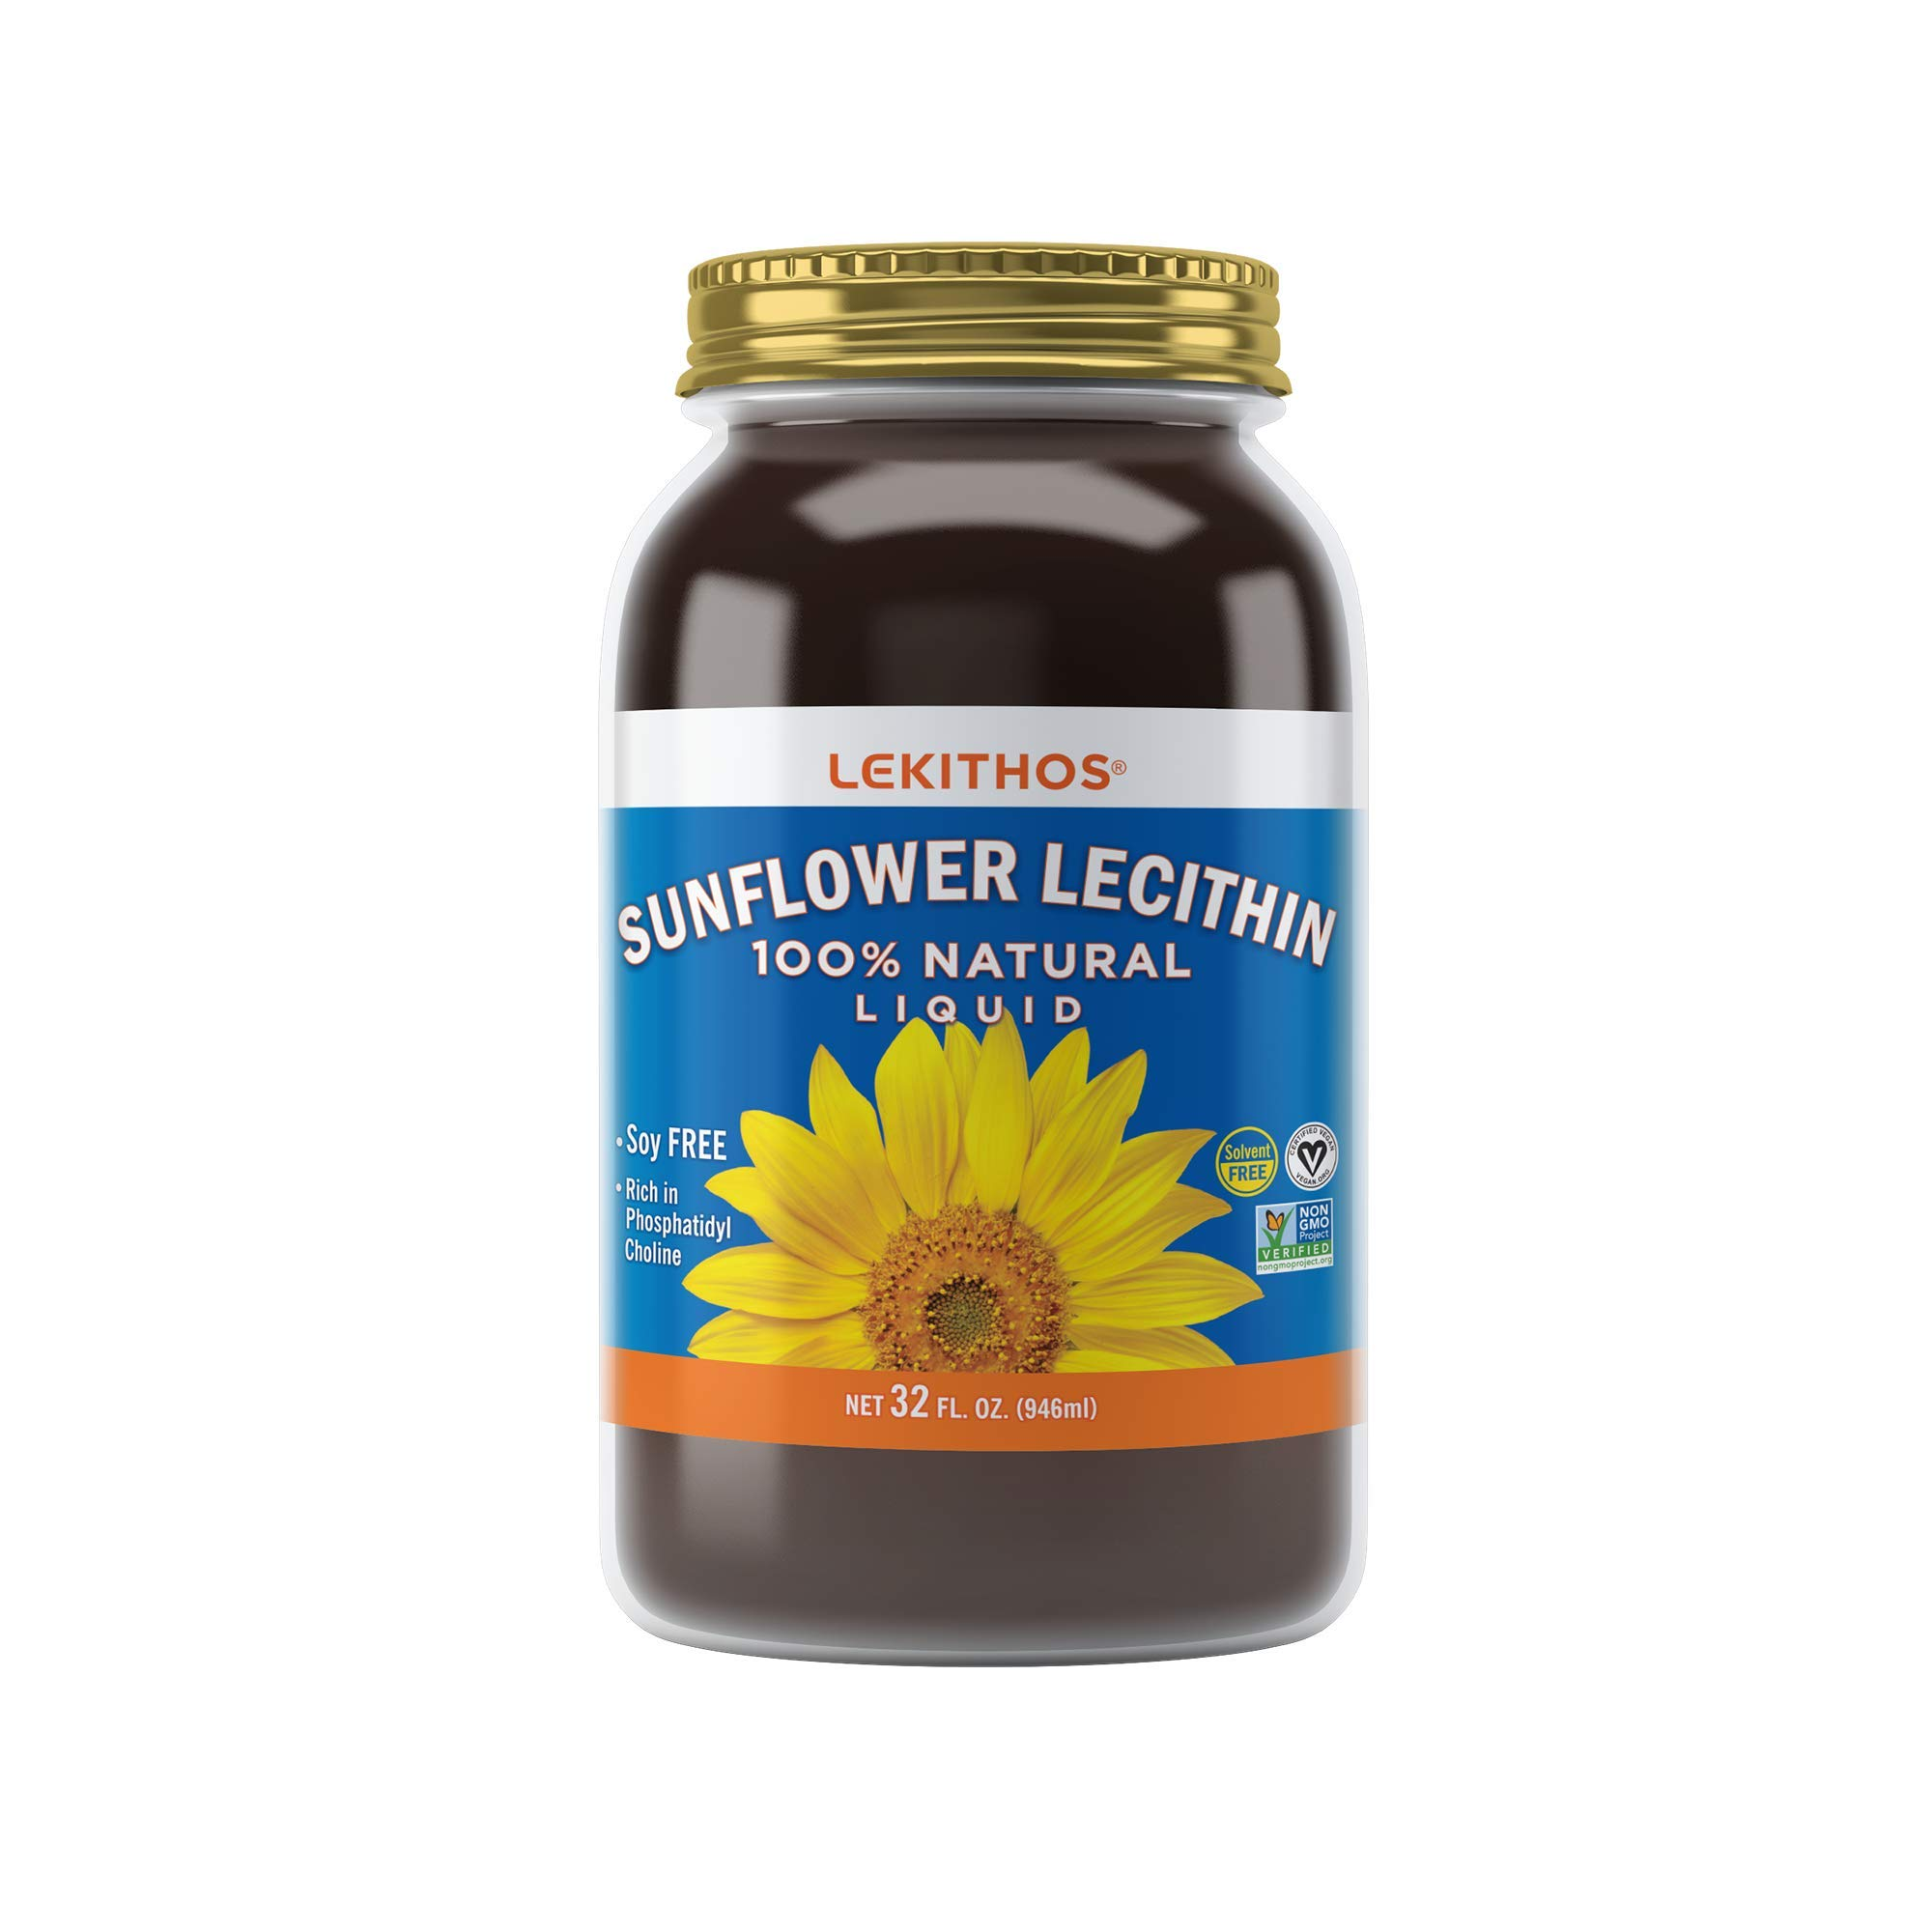 Lekithos® 100% All Natural Liquid Sunflower Lecithin - 32 fl. oz. - Cold Pressed (Solvent Free) - Rich in Phosphatidyl Choline - Non-GMO Project Verified by Lekithos